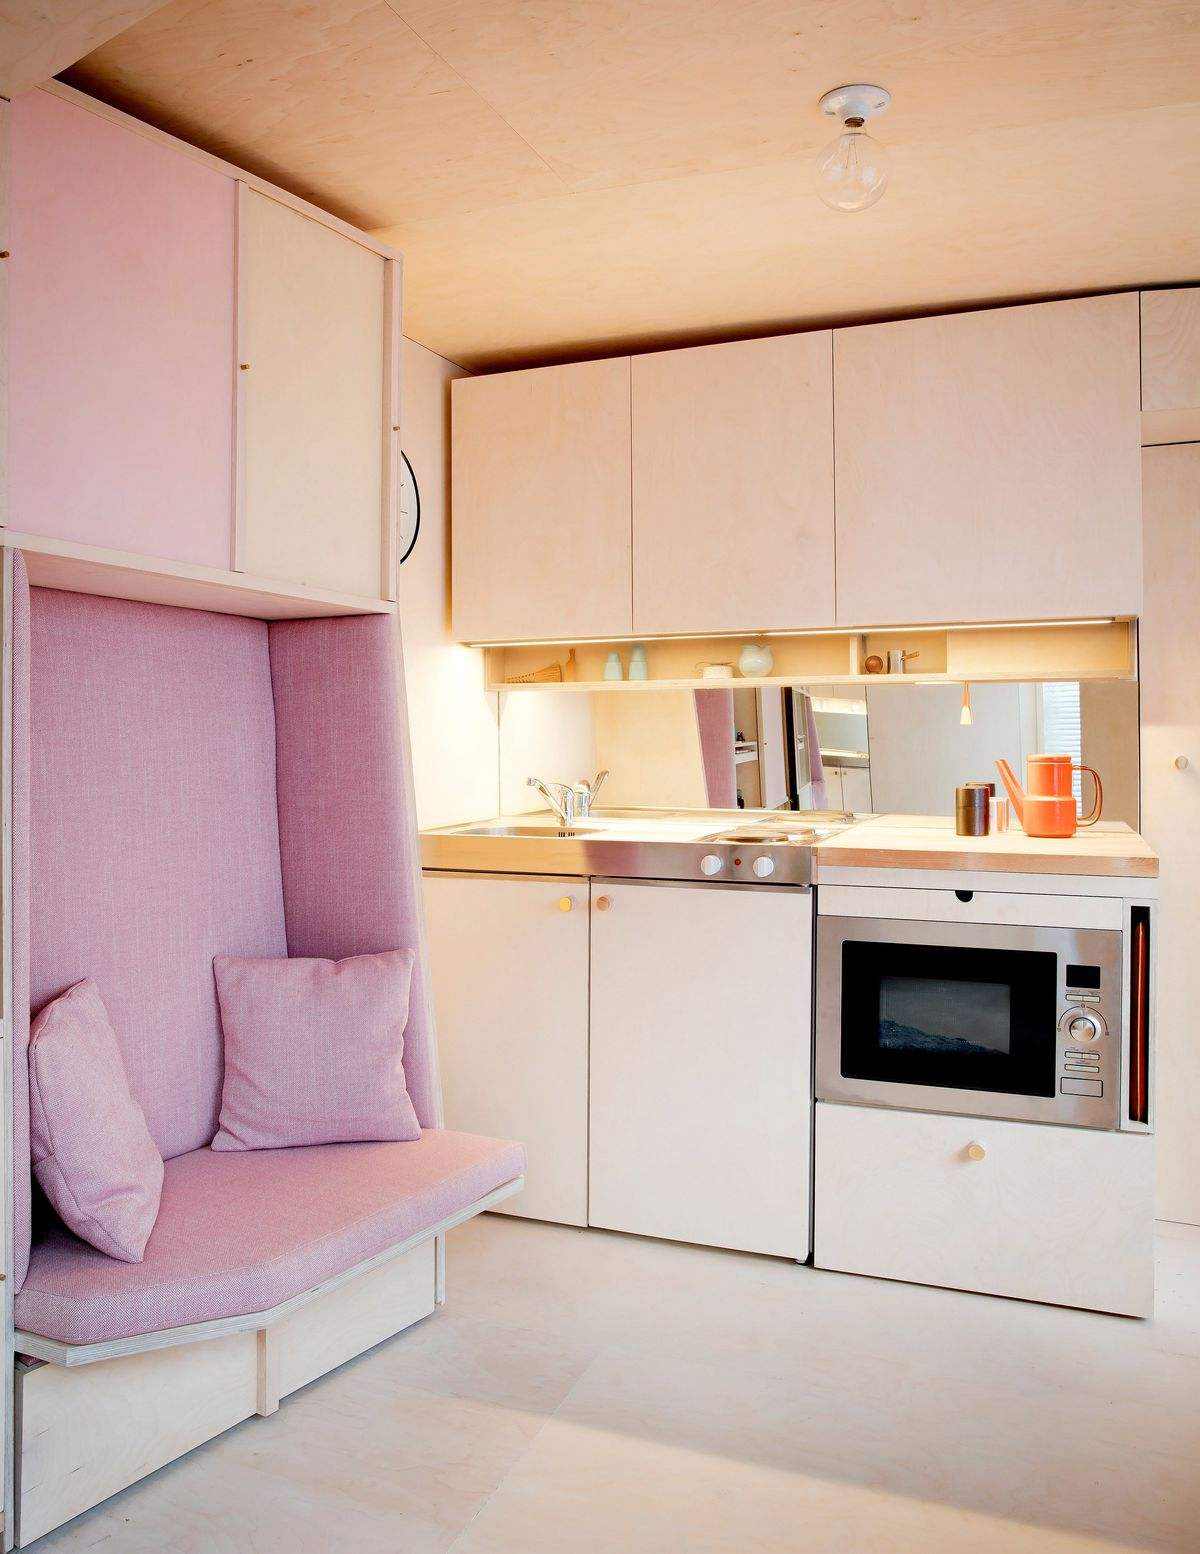 This Flexible 140 Square Foot Home Maximizes Livable Space